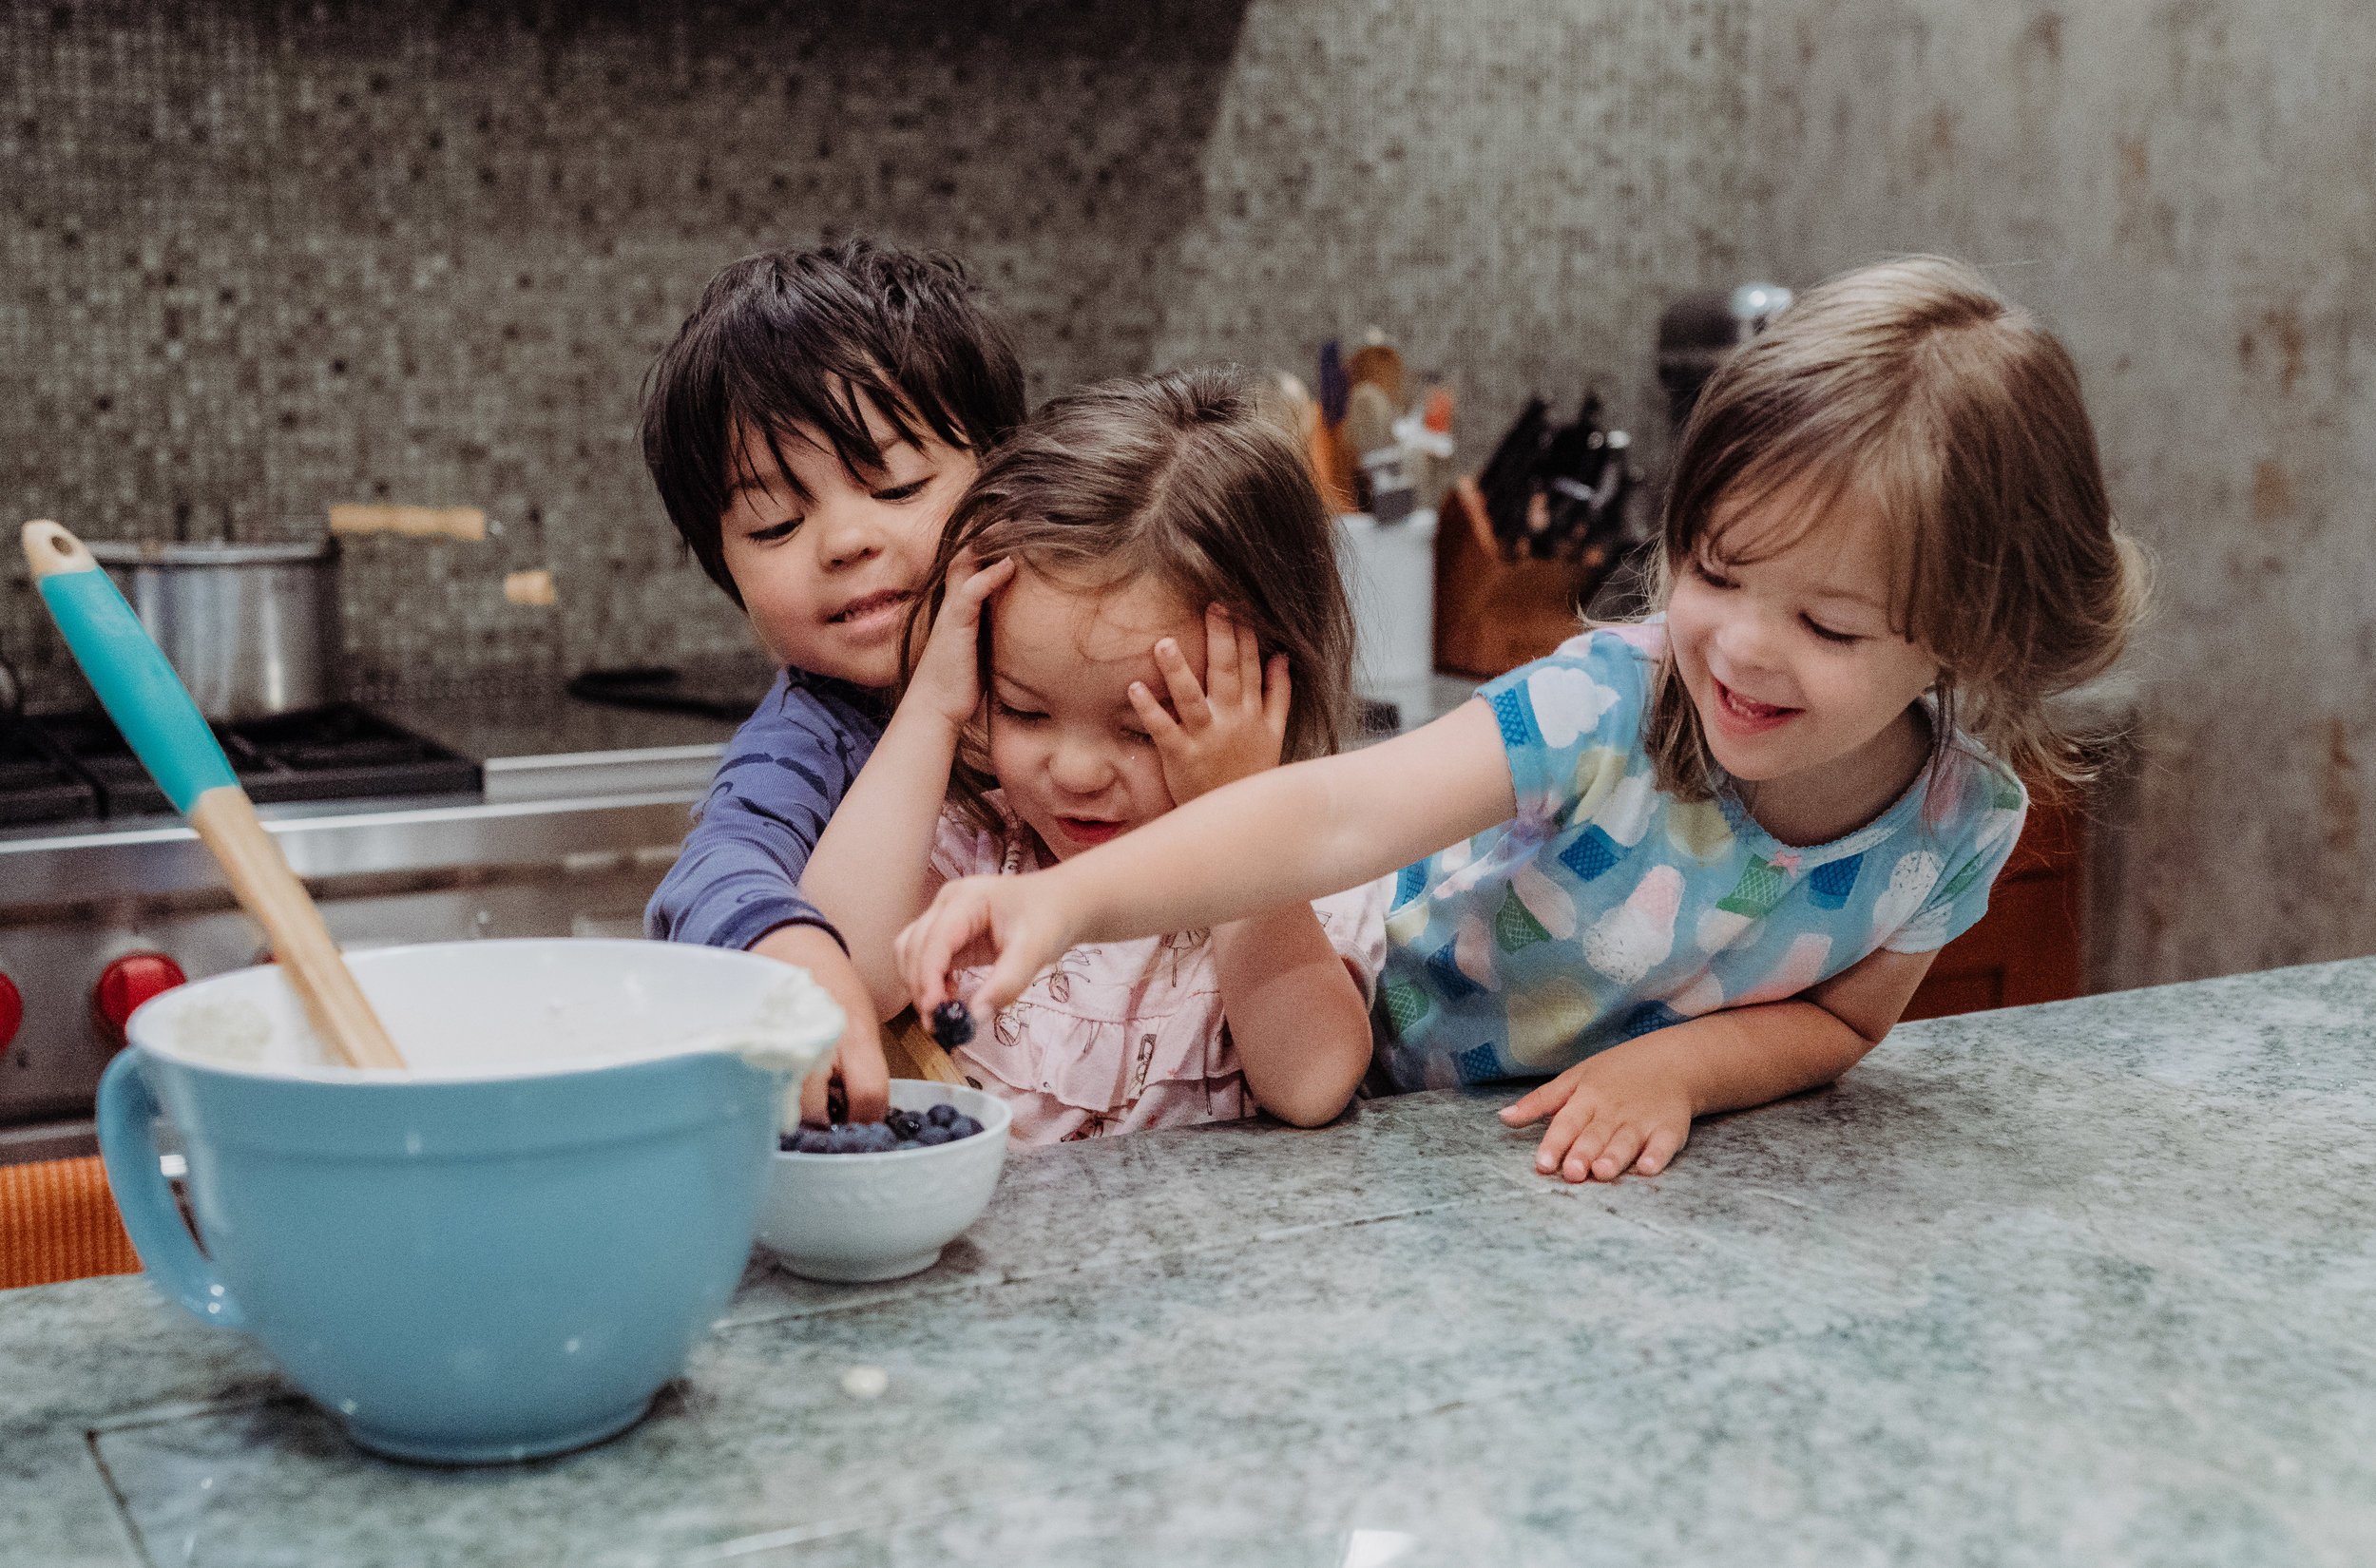 documentary lifestyle family photo session kids helping bake in kitchen mixing bowl Ore Adesina Photography Oklahoma City